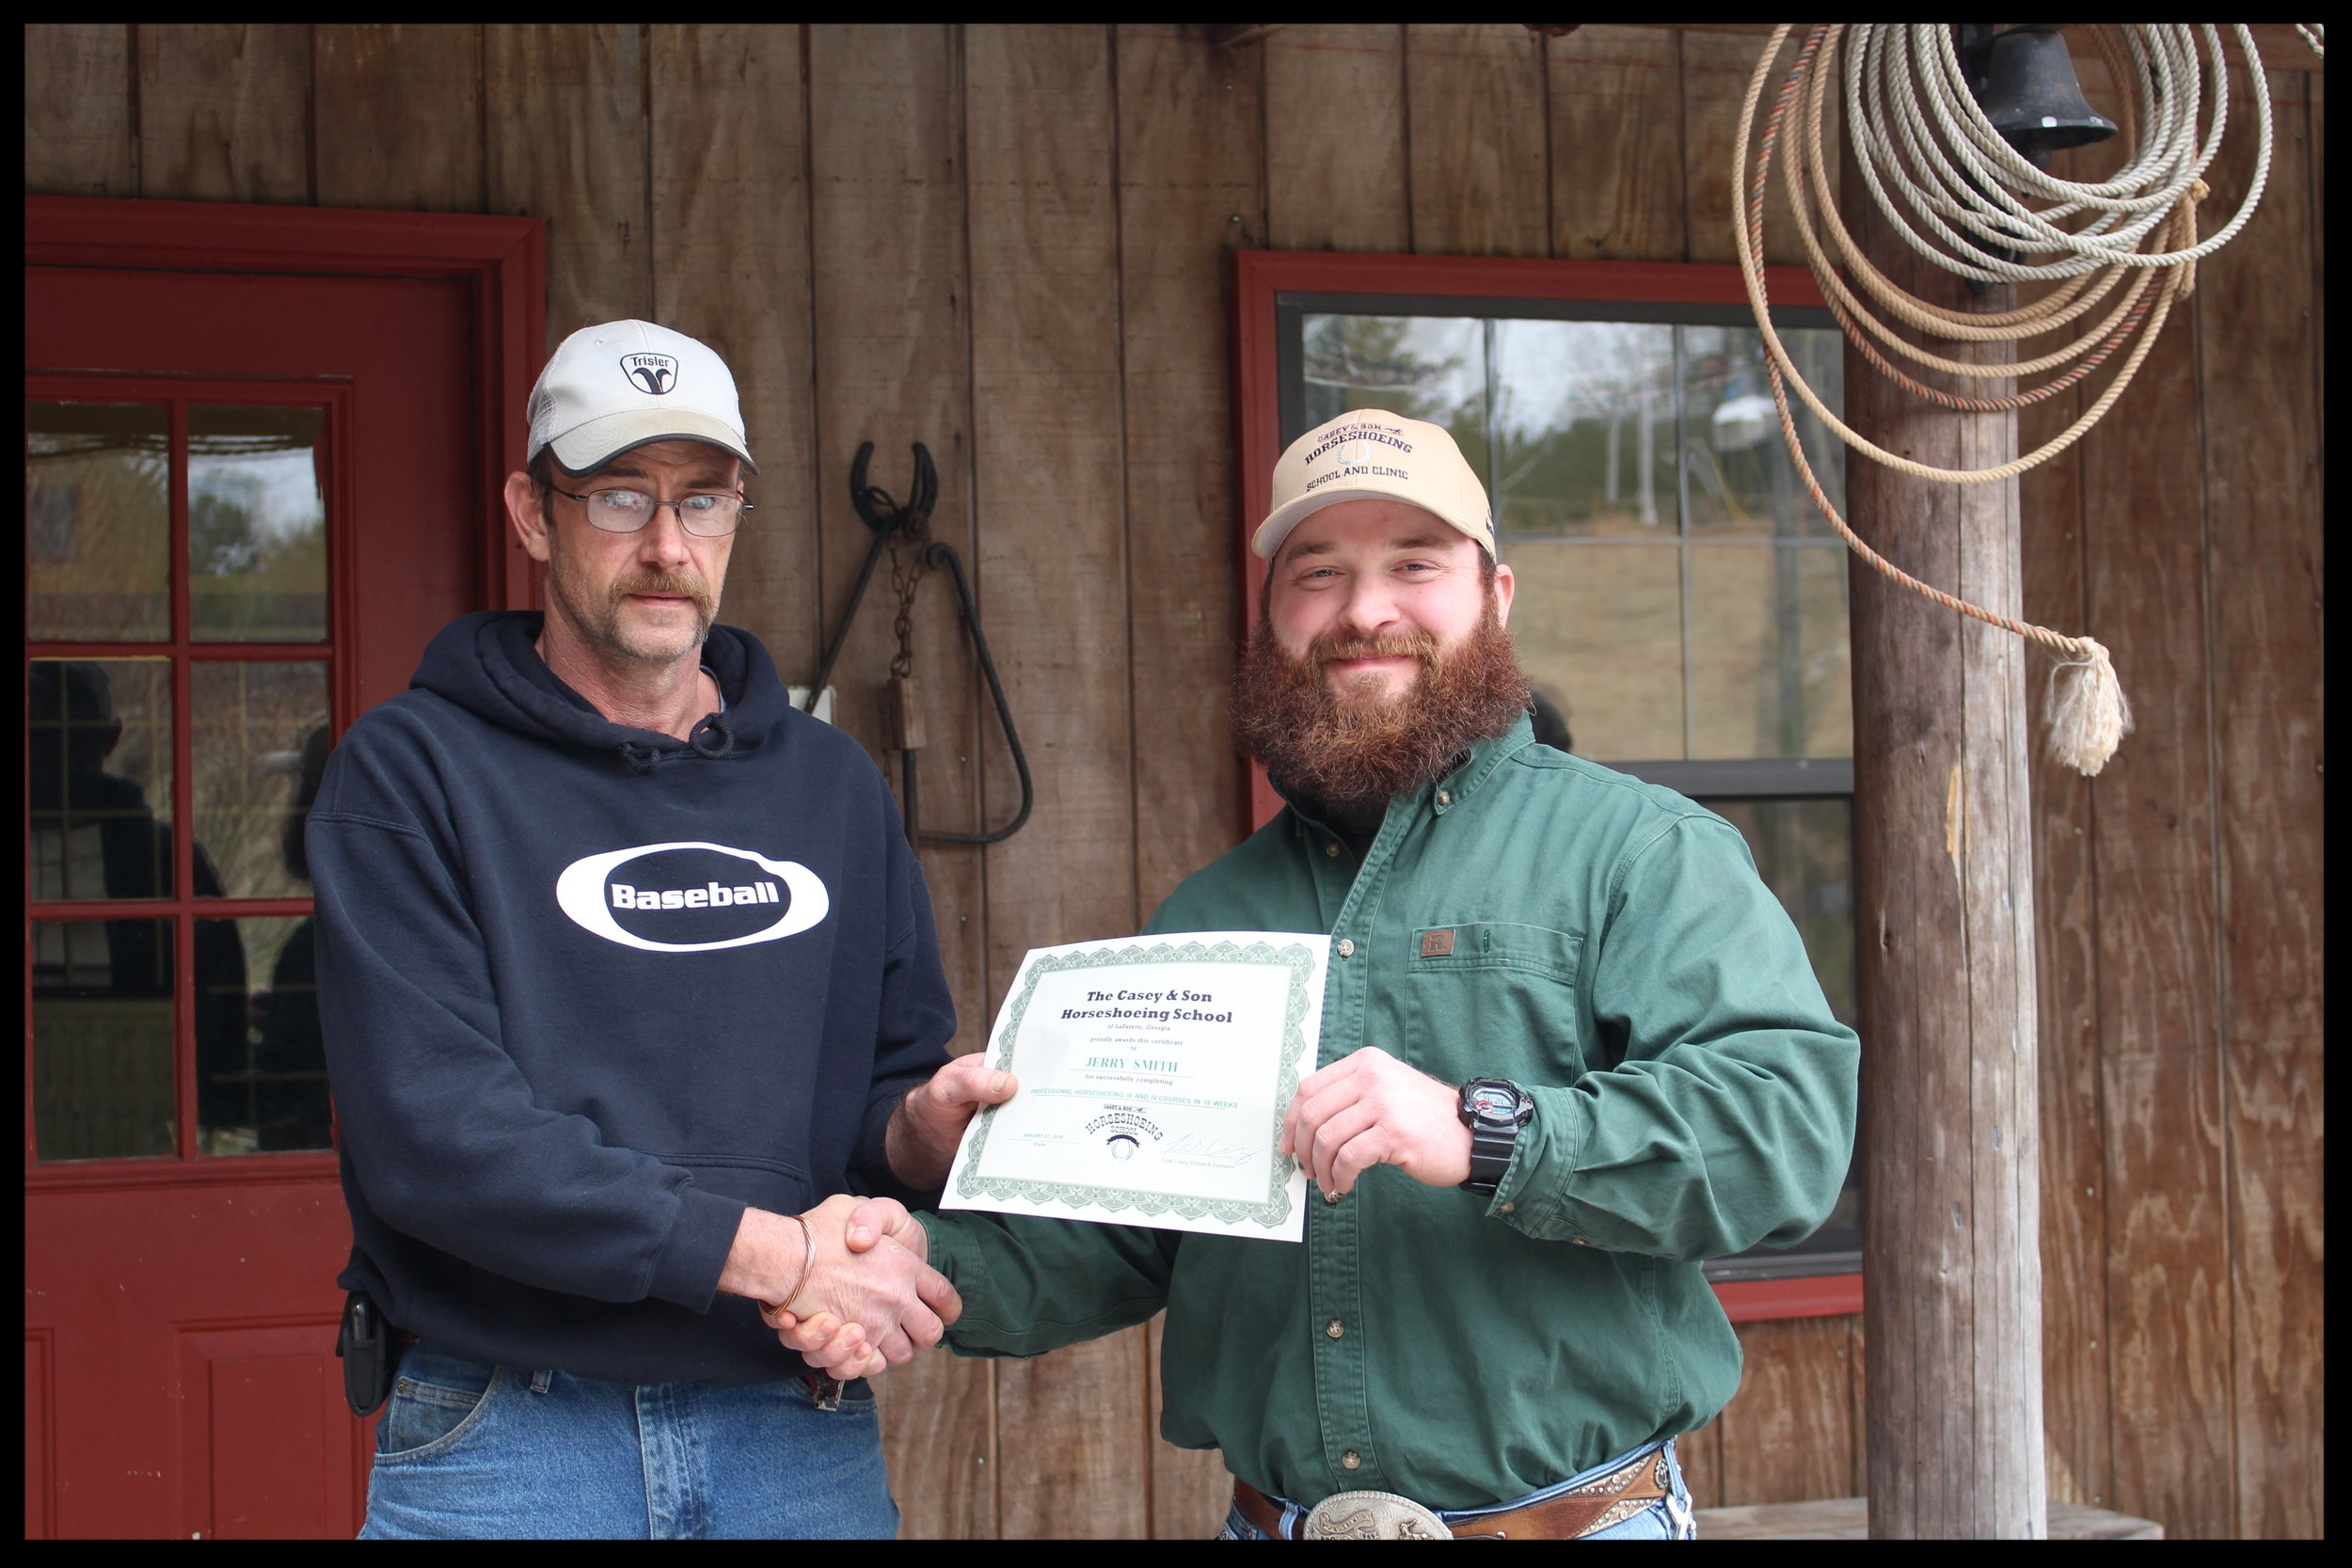 Casey & Son Horseshoeing School farrier graduate Jerry Smith of Tennessee with Link Casey 1.27.2018